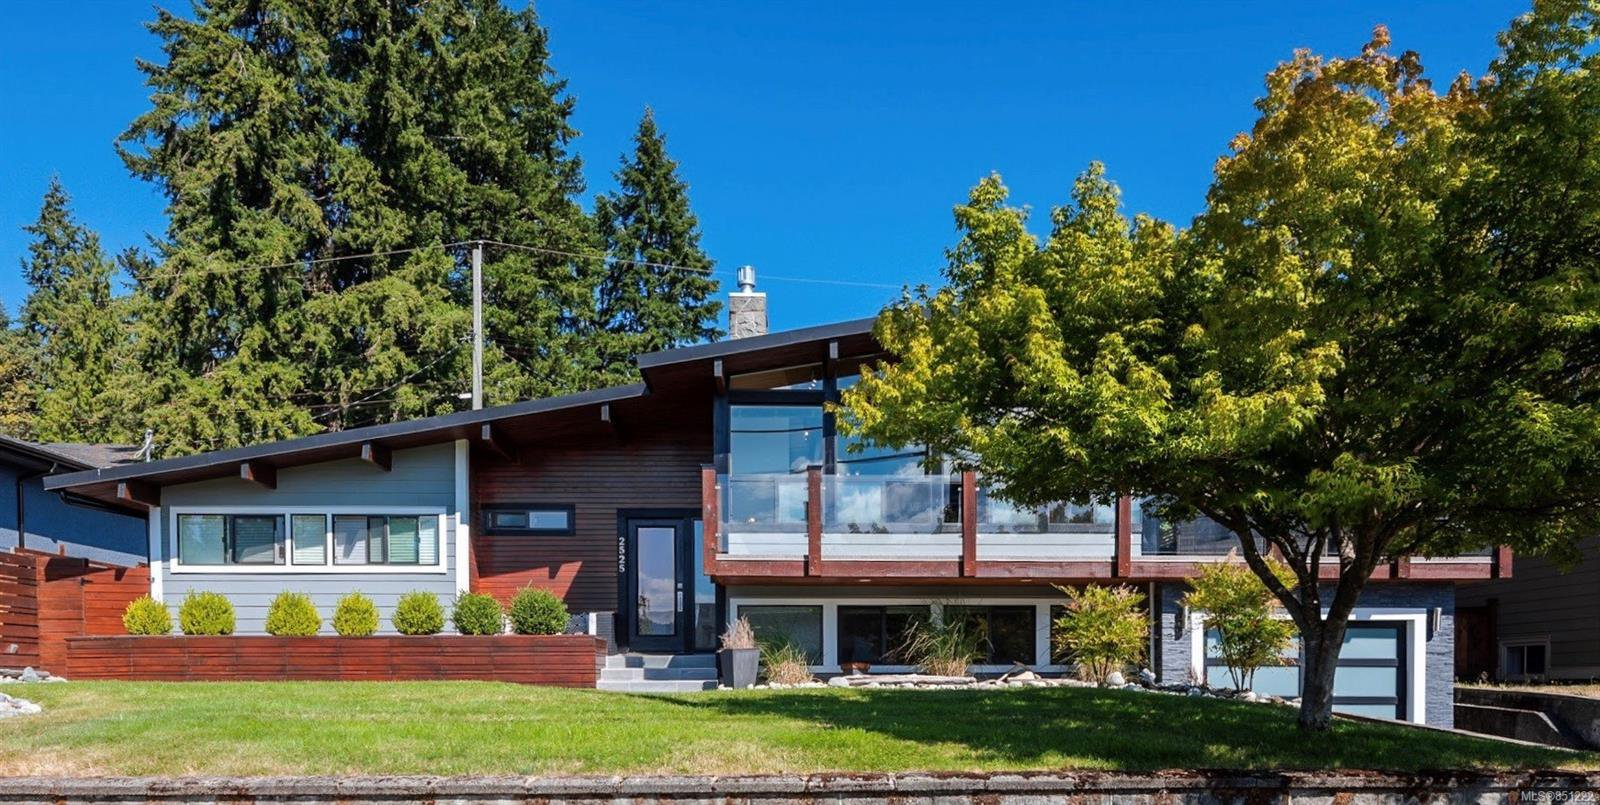 Main Photo: 2525 11th Ave in : PA Port Alberni House for sale (Port Alberni)  : MLS®# 851222